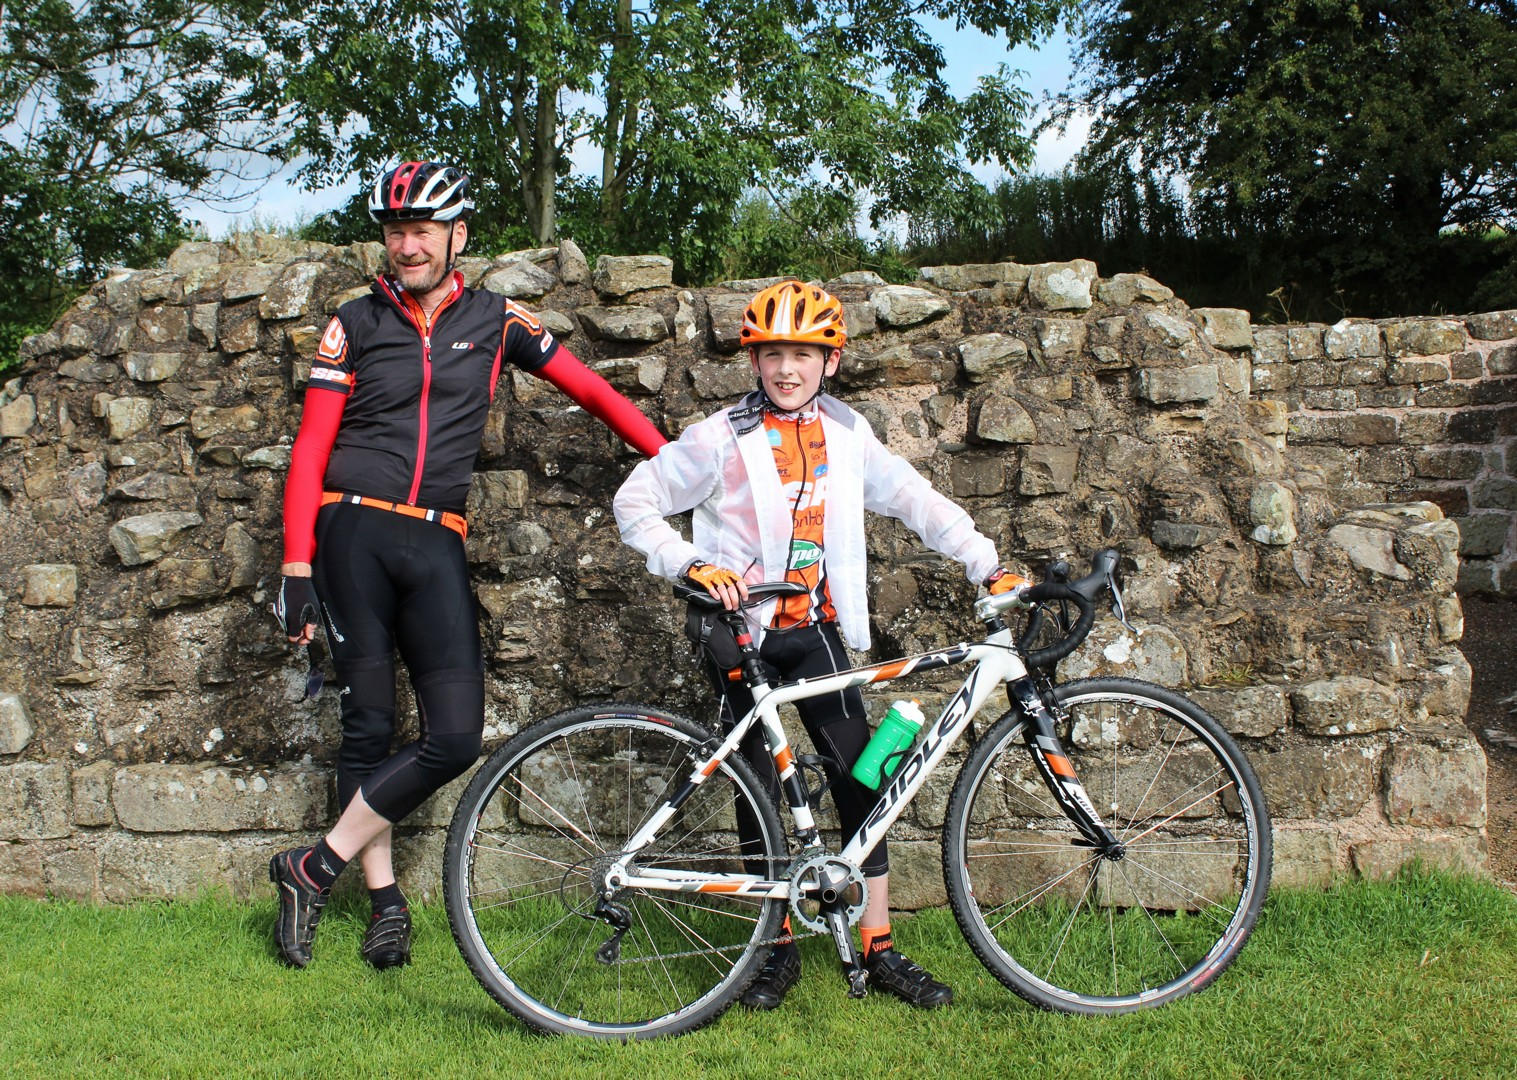 family-self-guided-cycling-holiday-hadrians-wall.jpg - UK - Highlights of Hadrian's Cycleway - Self-Guided Family Cycling Holiday - Family Cycling